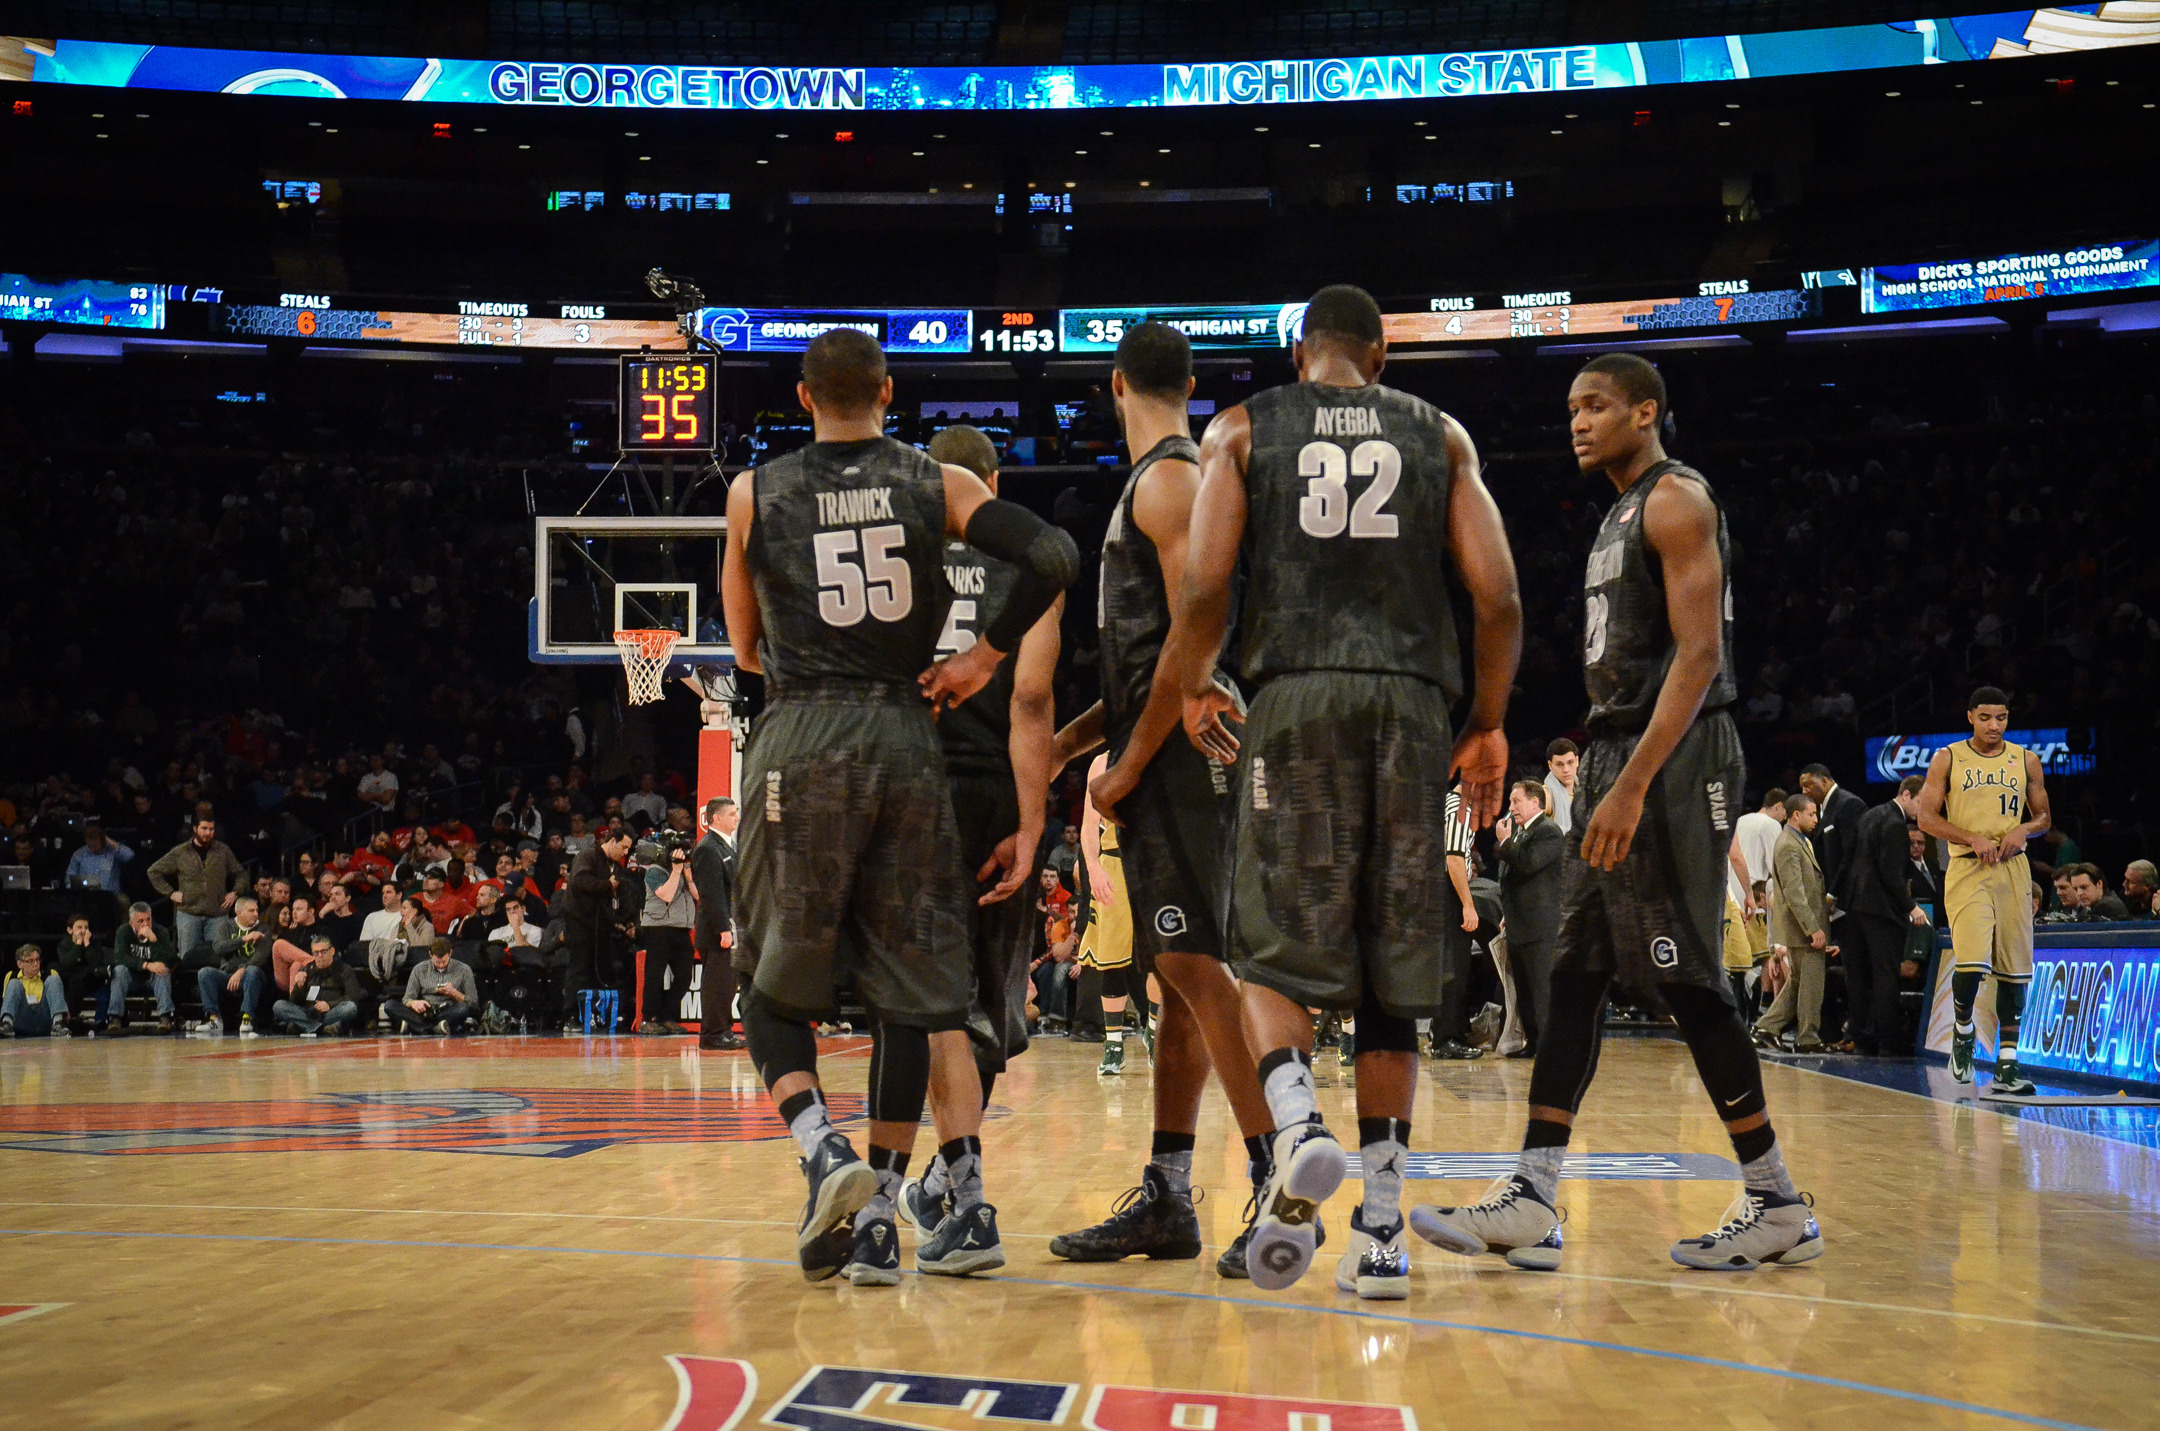 The Georgetown University men's basketball team had little time to revel in its second win over a top-10 team this season, flying to Chicago on Saturday night as the Hoyas ready for another BIG EAST Conference game, this time on Monday, Feb. 3 when they visit DePaul at AllState Arena.  Tip-off is slated for 9 p.m. ET.